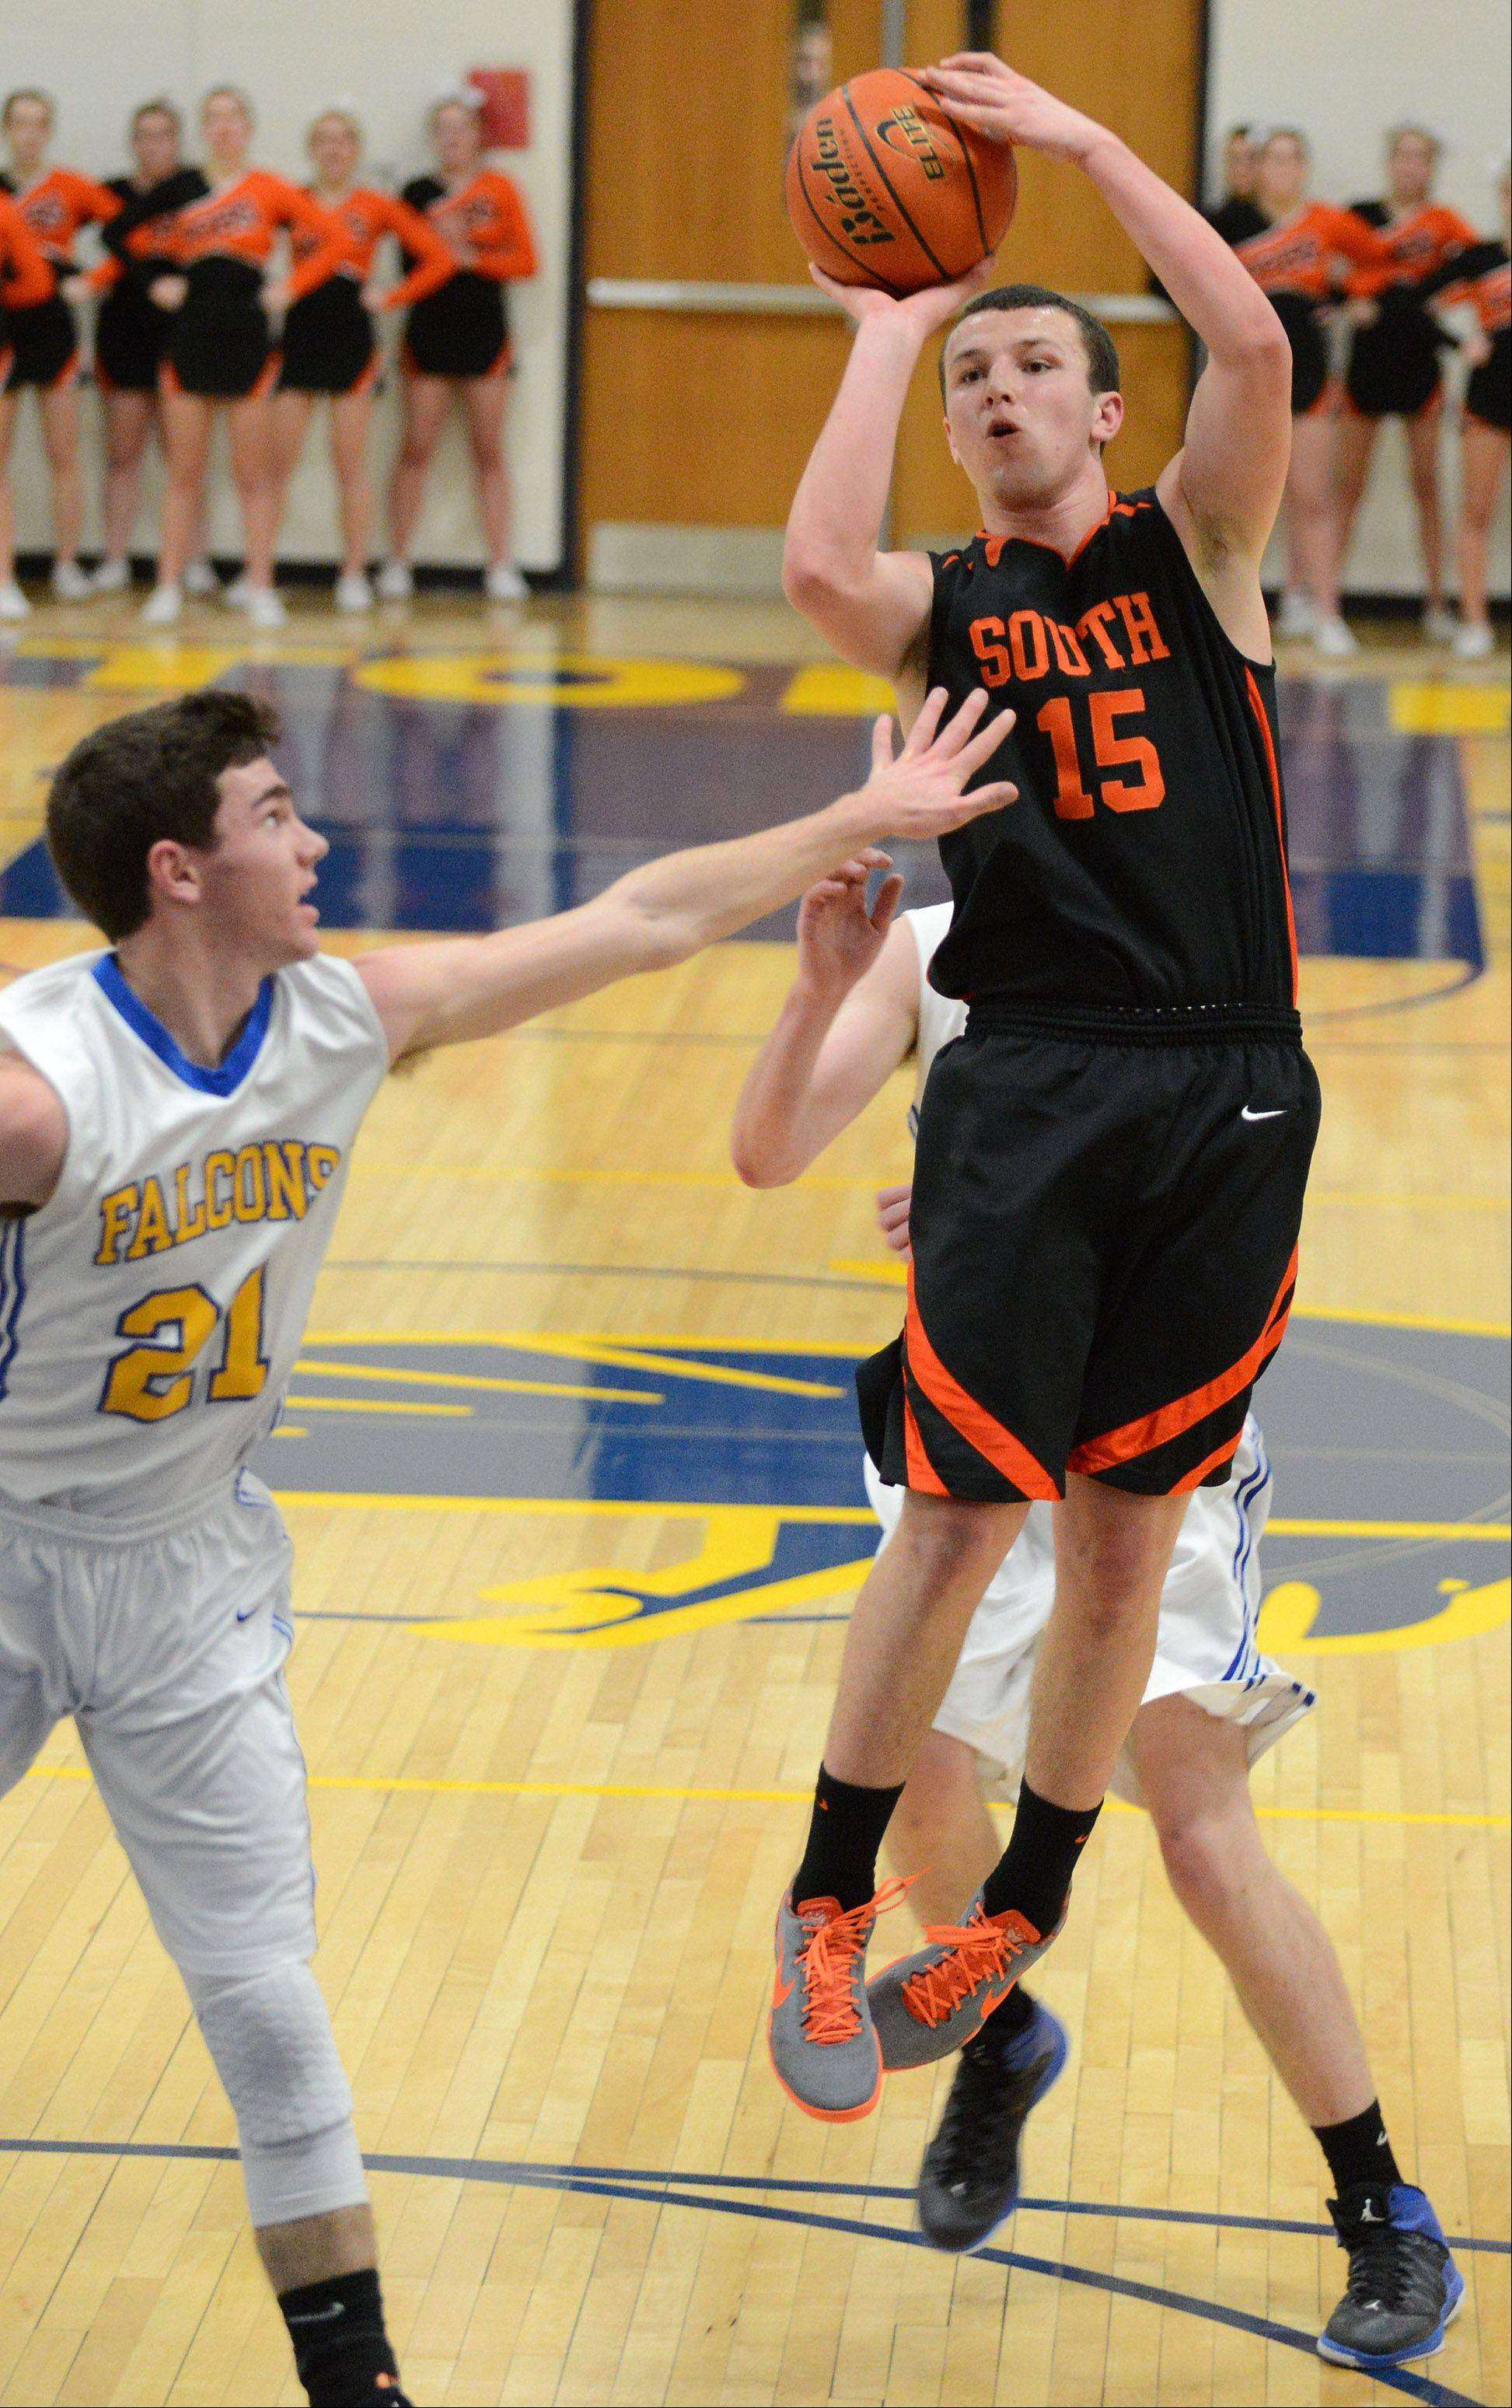 Wheaton North hosted Wheaton Warrenville South Friday, Jan. 31 for boys basketball.